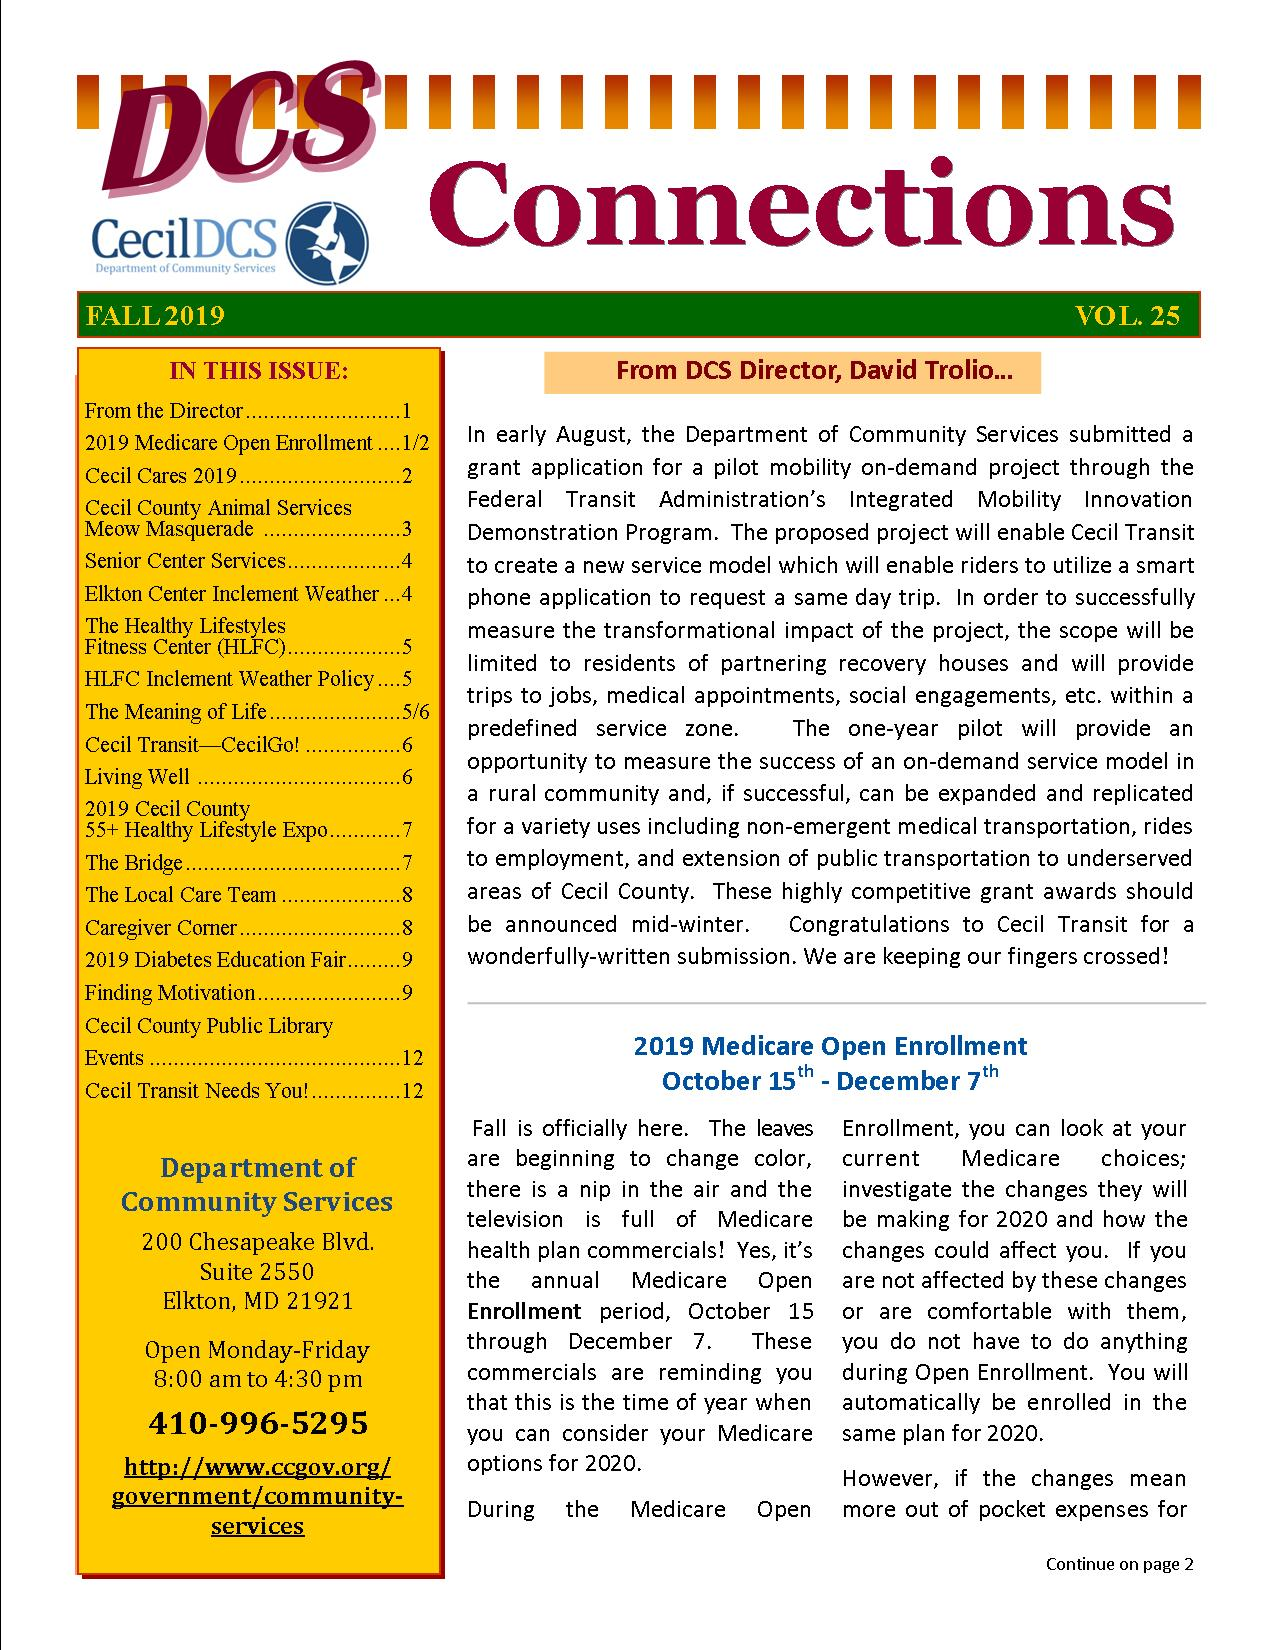 Connections Vol. 25